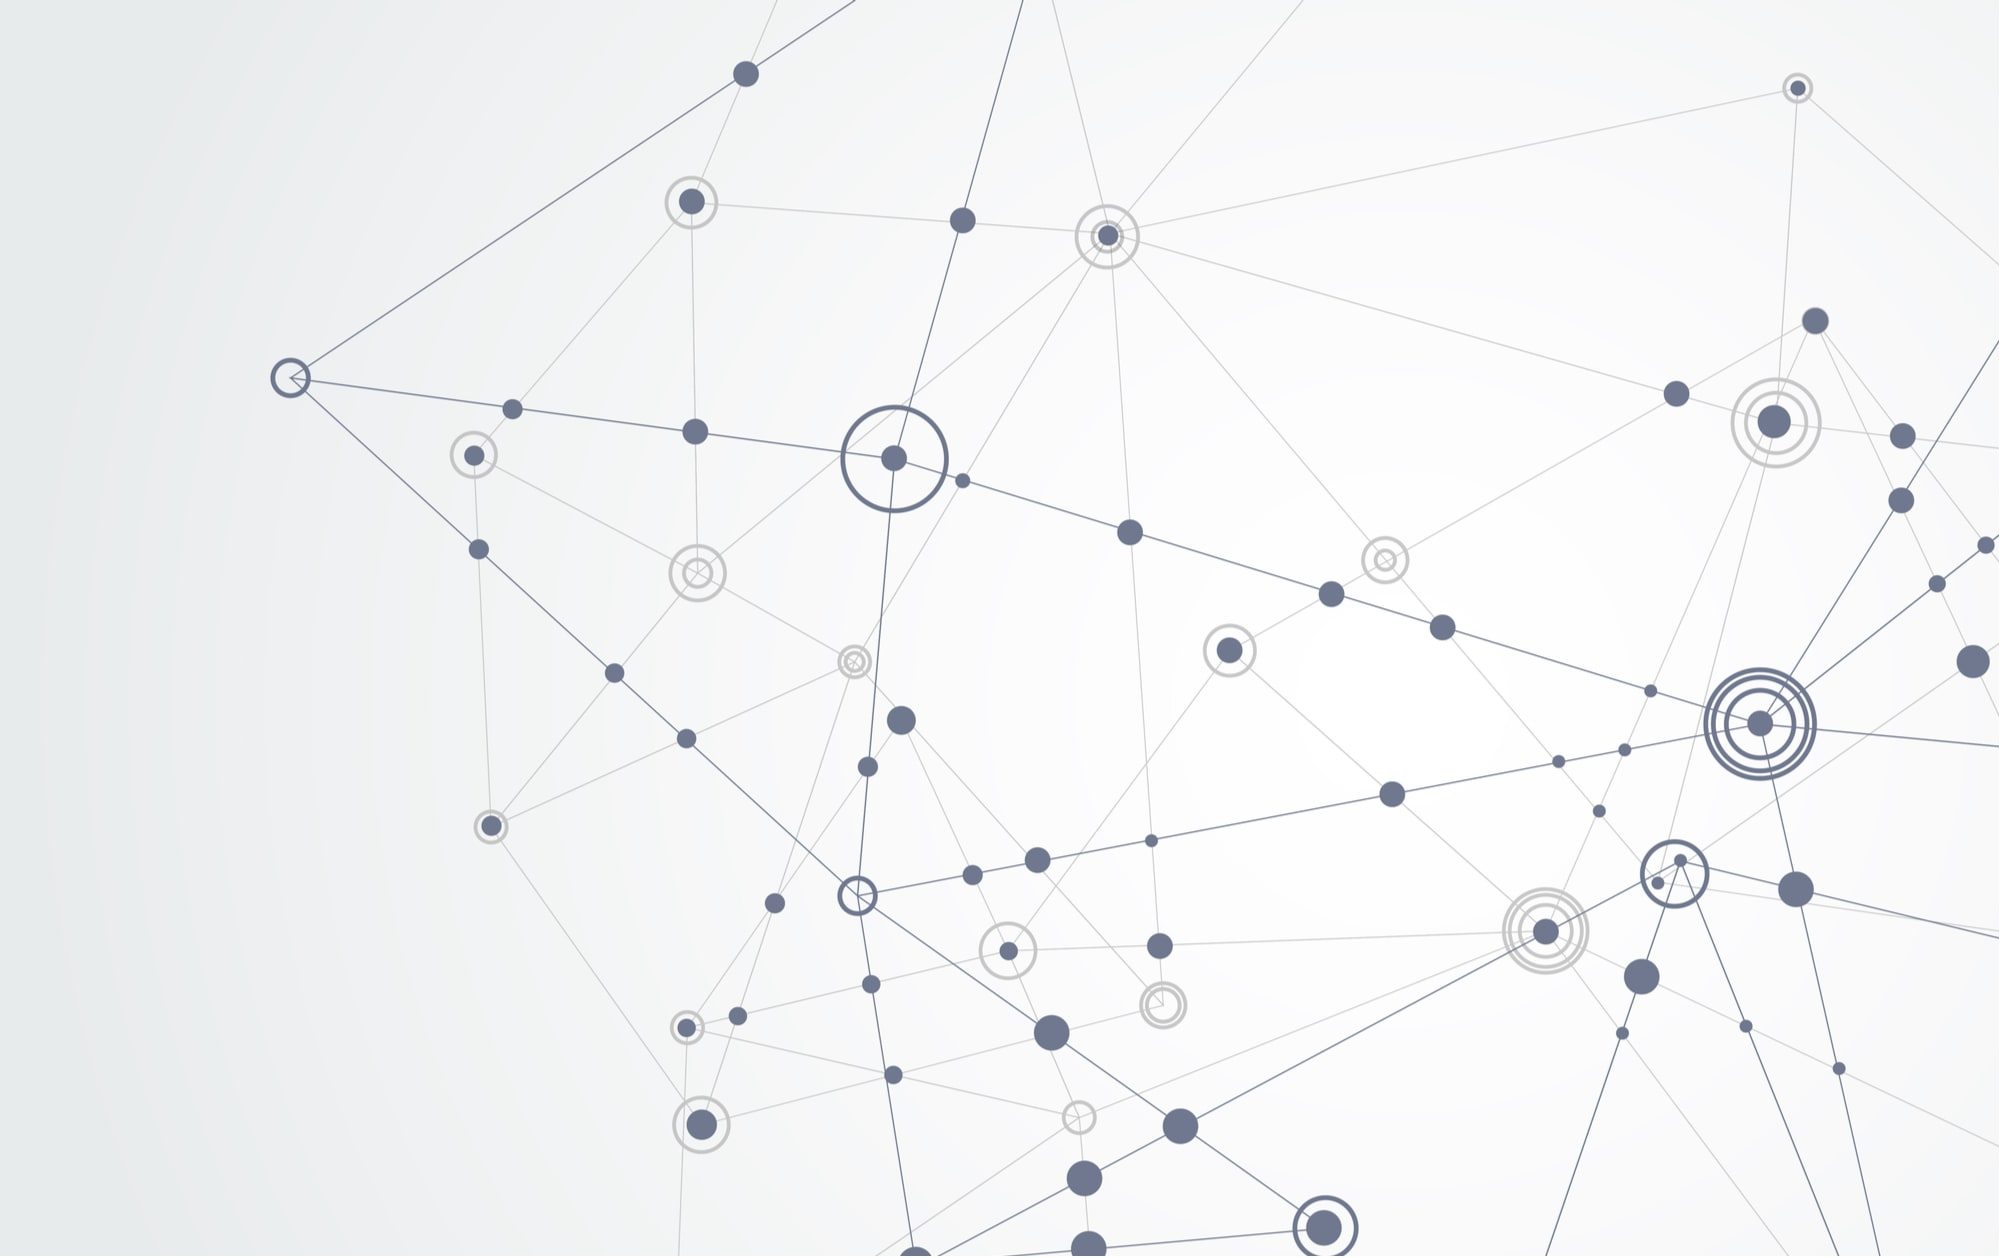 Using Social Network Analysis to Identify Decision-Makers and Improve Public Policy